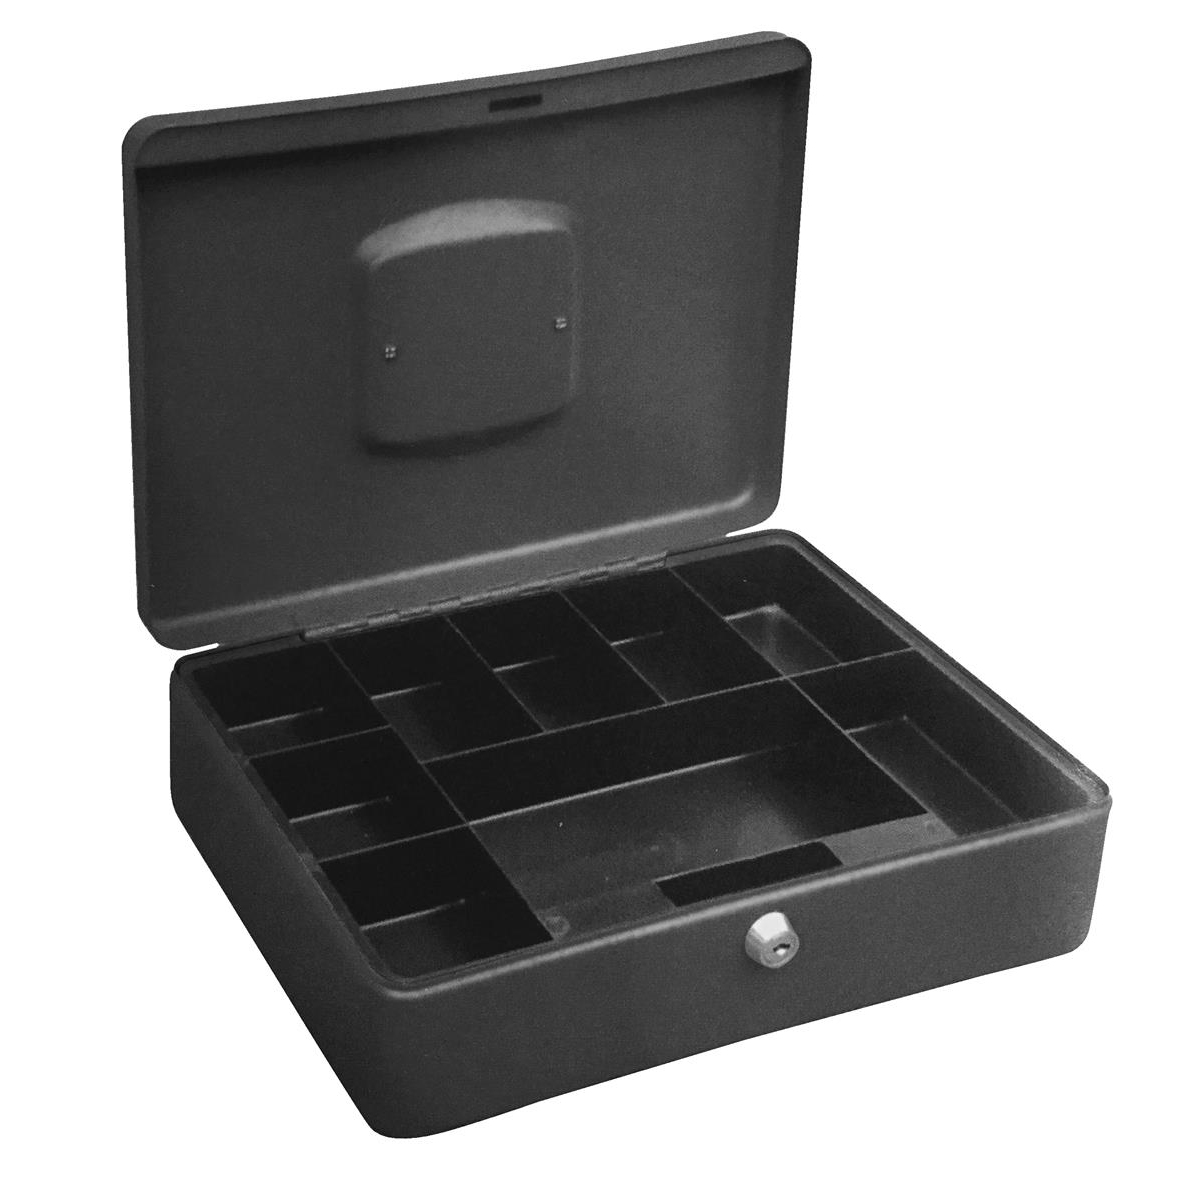 Cash or ticket boxes 5 Star Facilities High Capacity Cash Box 8 Part Coin Tray 1 Part Note Section W300xD230xH90mm Titanium